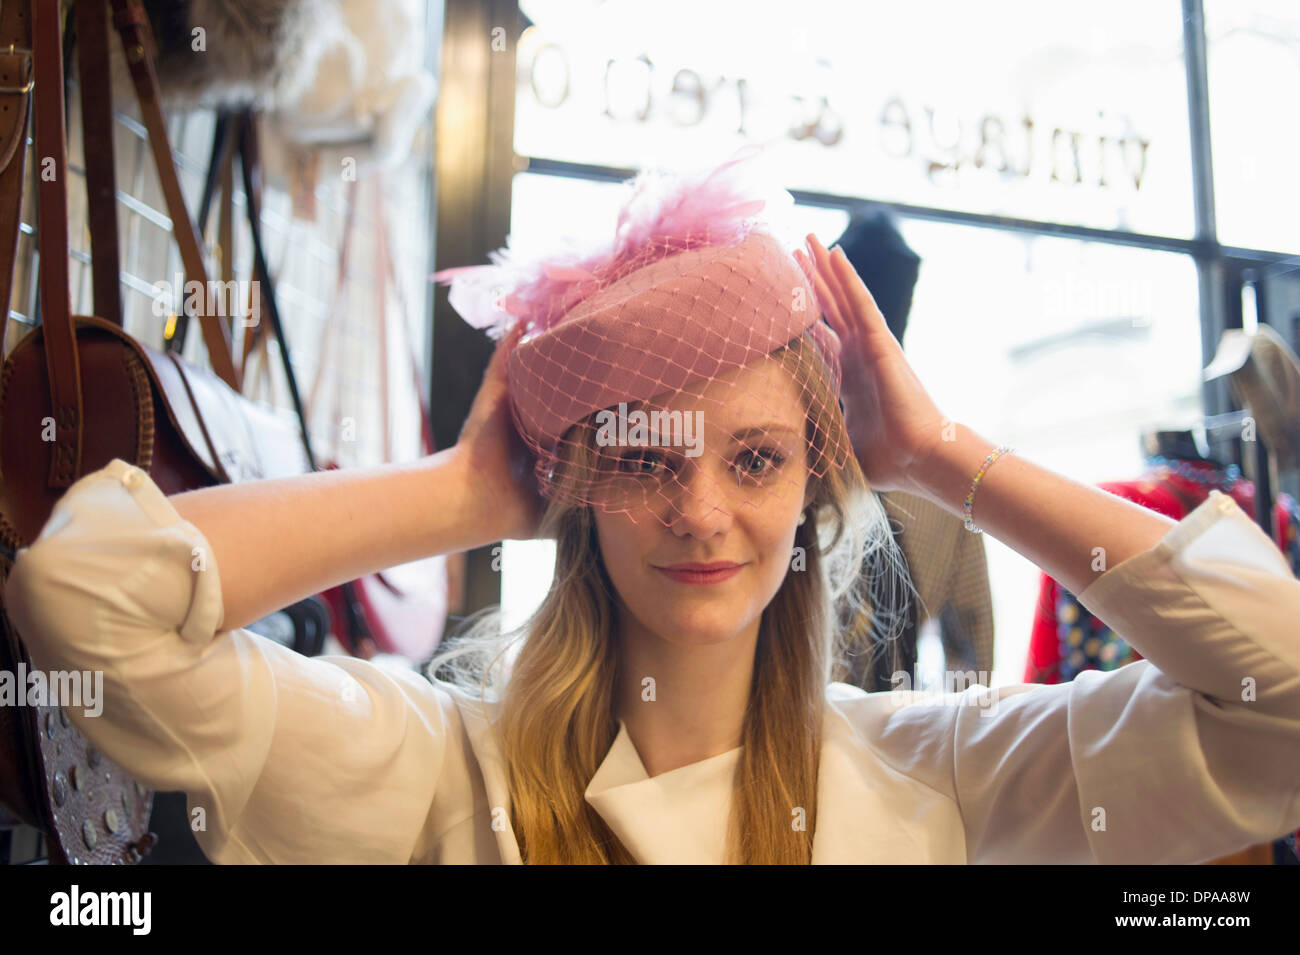 Woman trying on vintage hat - Stock Image